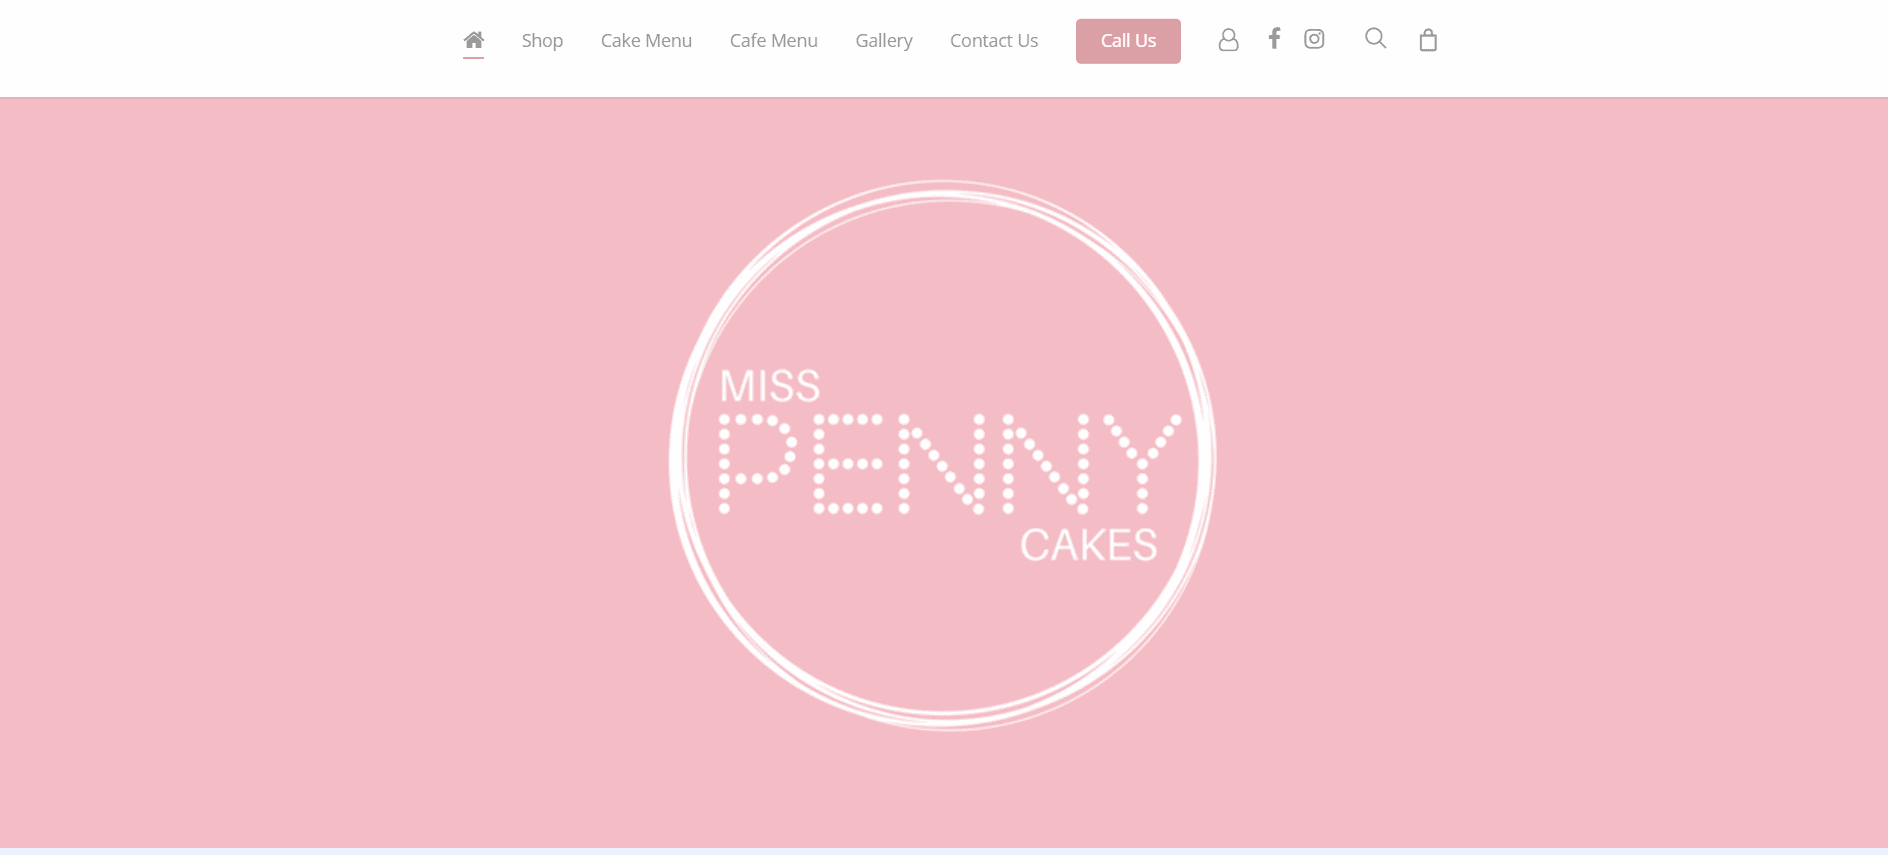 miss penny cakes